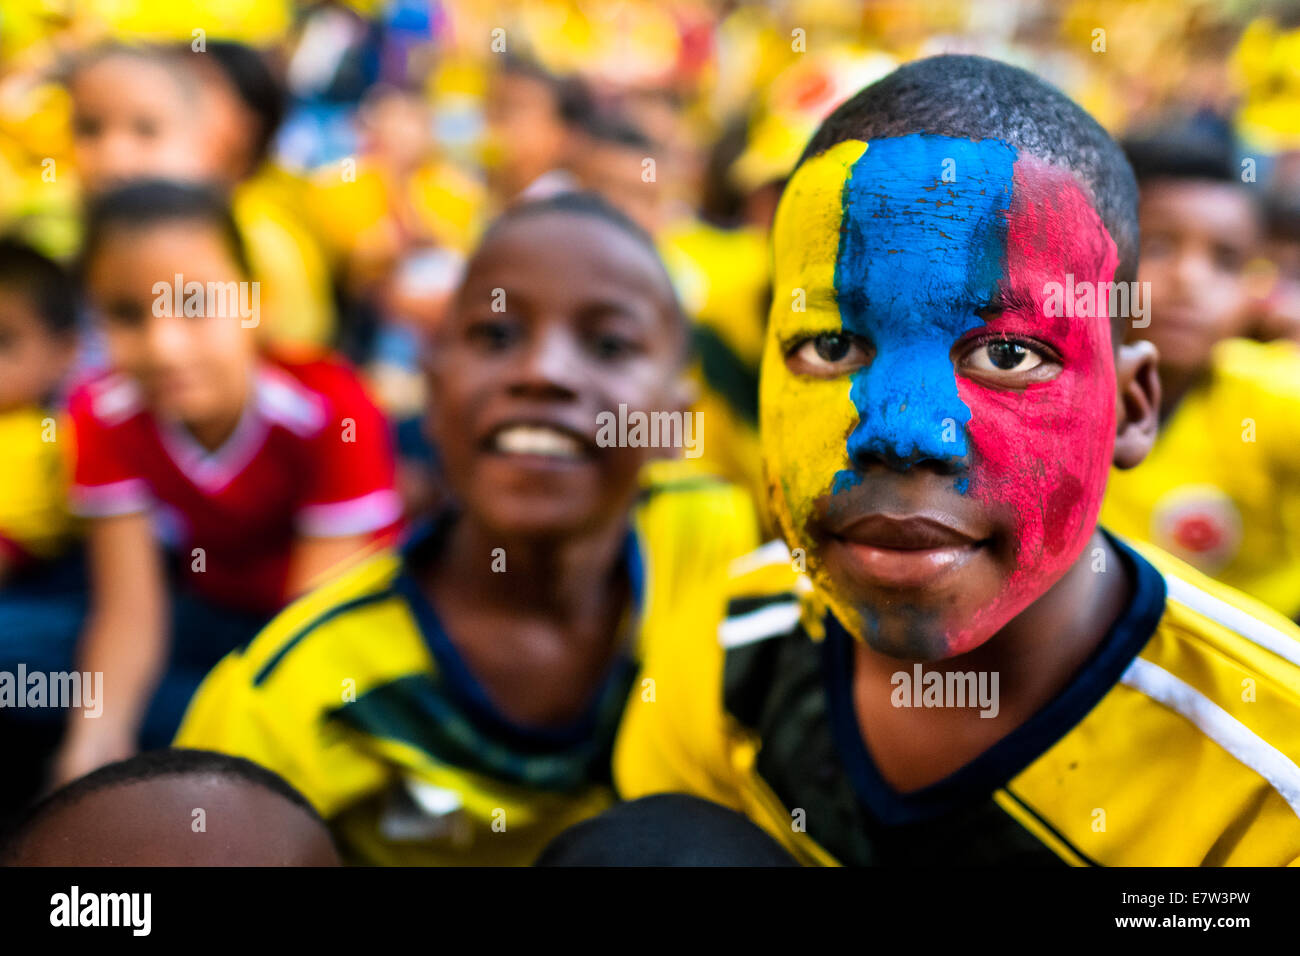 Colombian boys watch the football match at the FIFA World Cup 2014, in a park in Cali, Colombia. - Stock Image